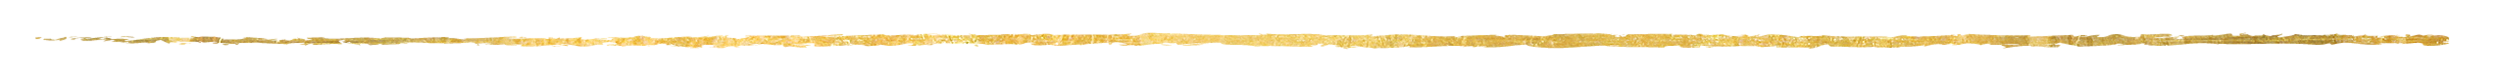 6_gold-line.png